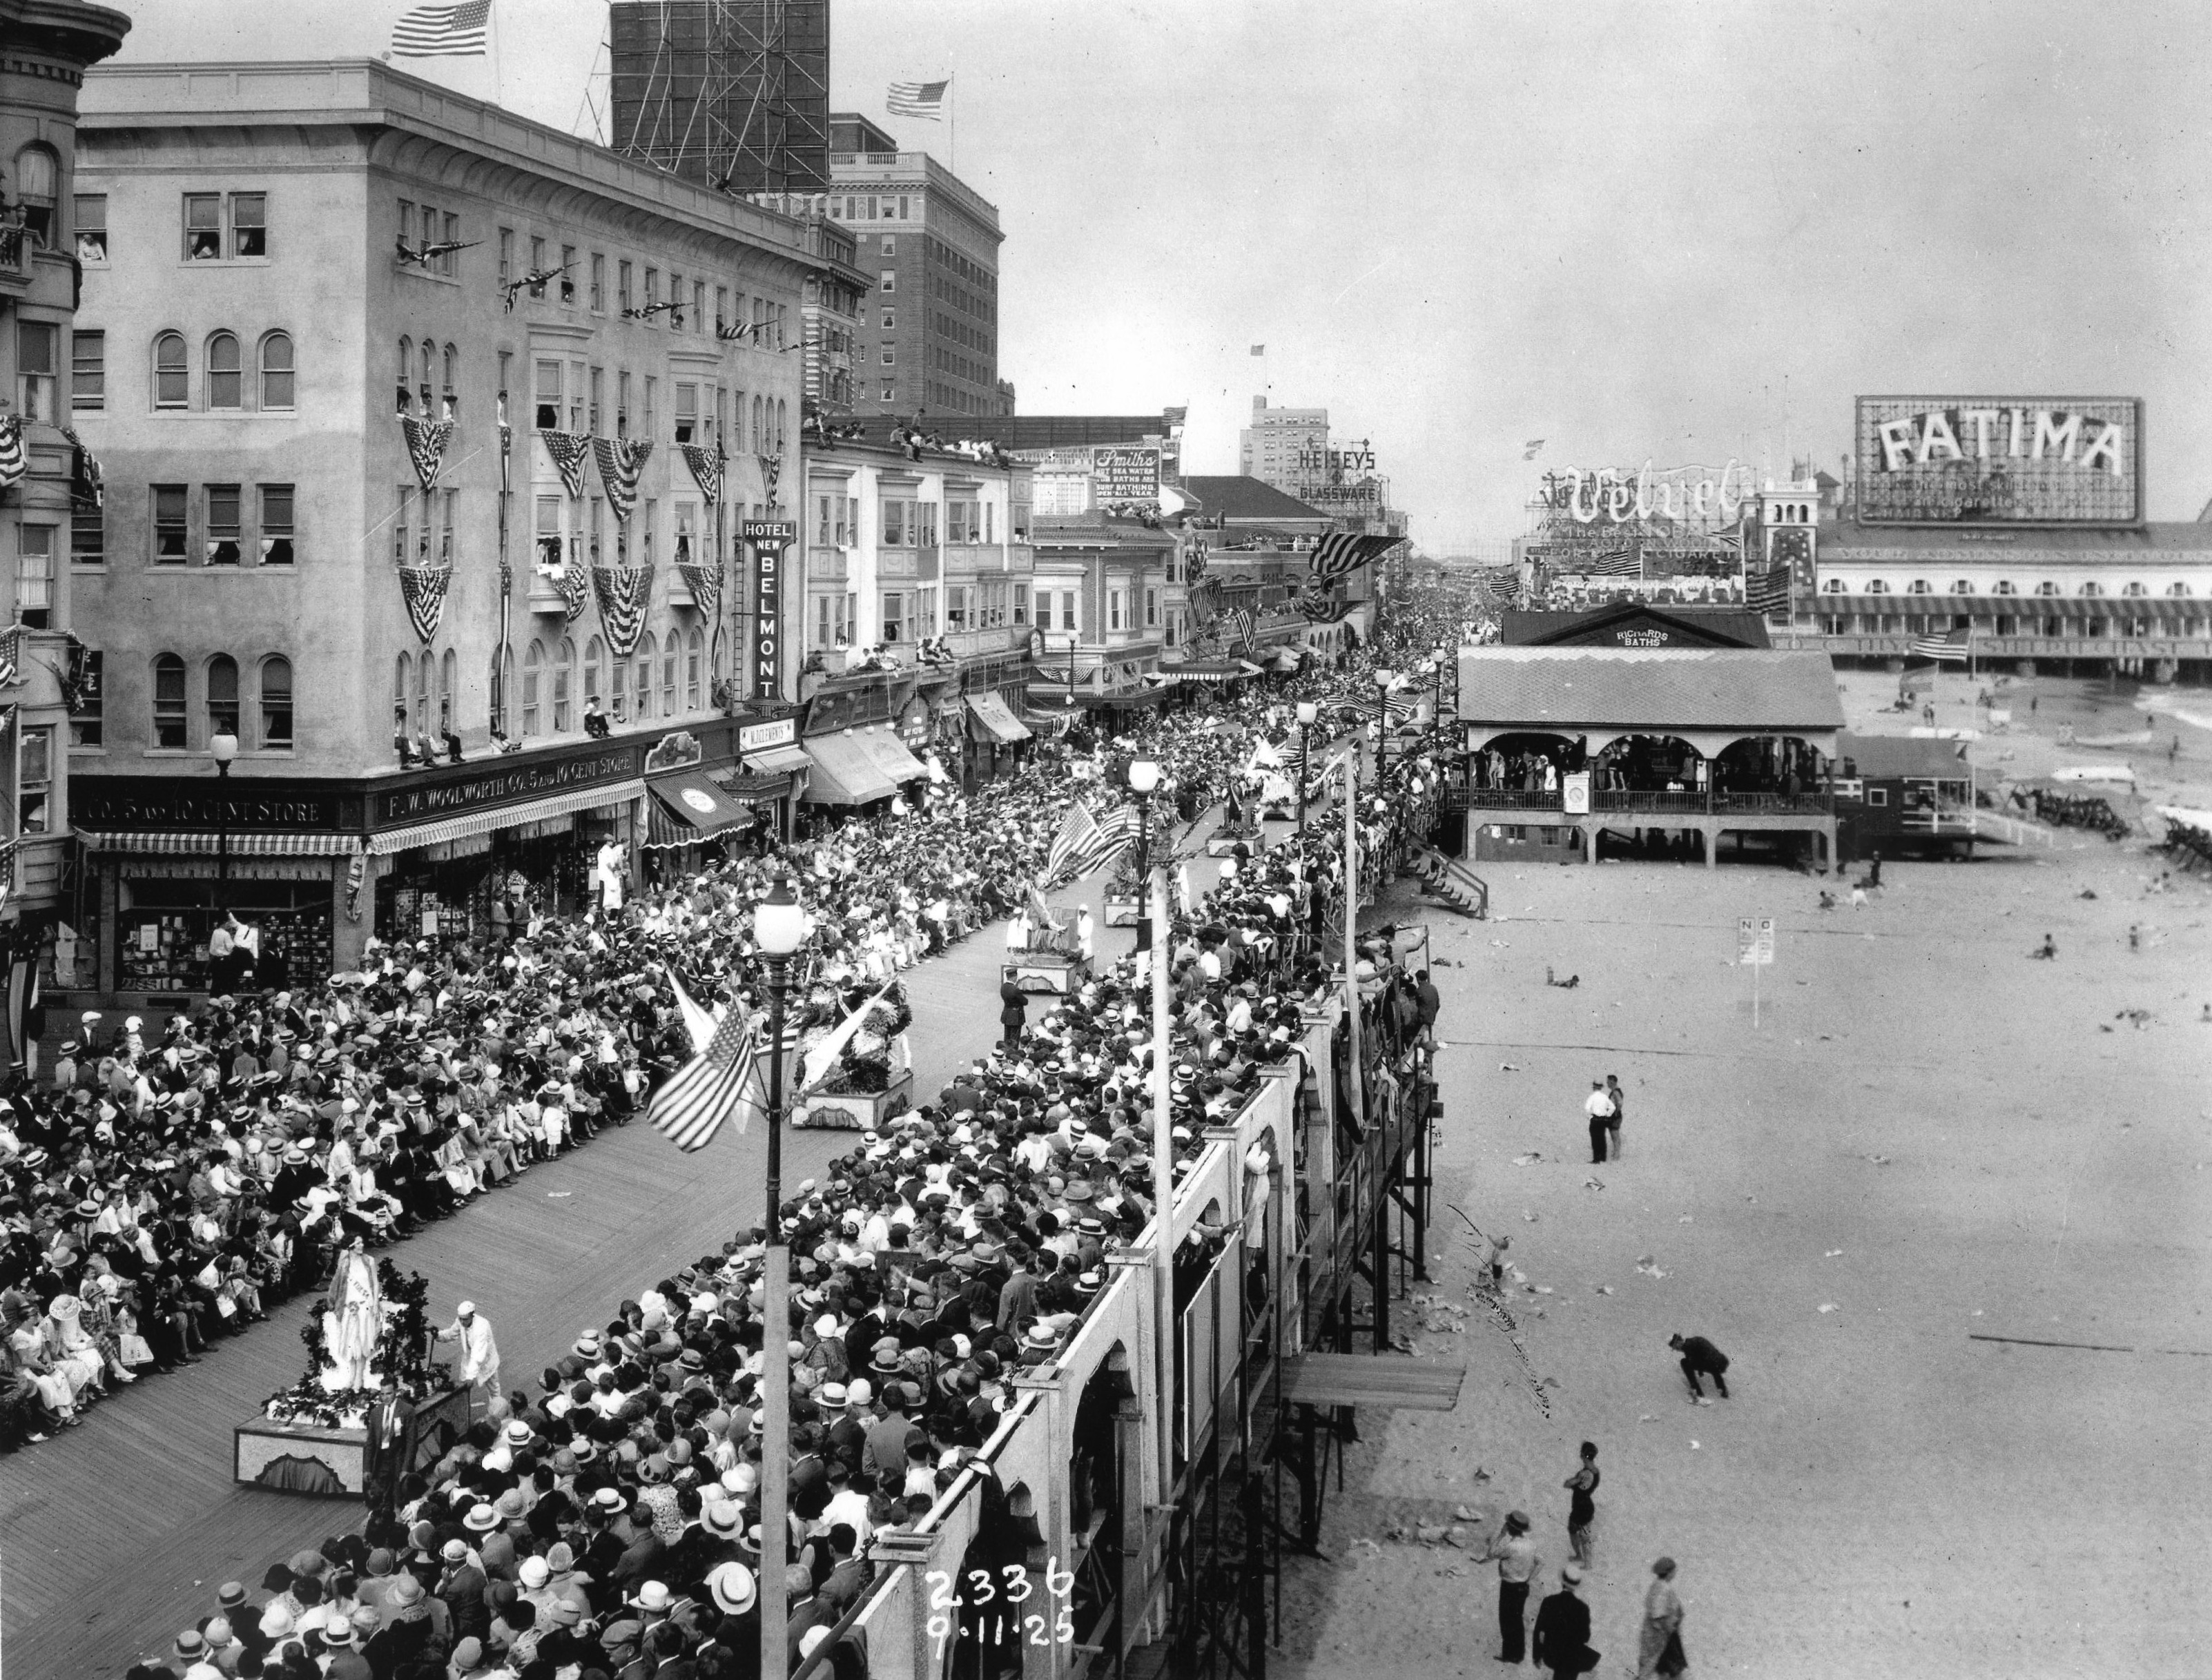 america in the 1920s The jazz age: the american 1920s the 1920s was a decade of major cultural conflicts as well as a period when many features of a modern consumer culture took root.